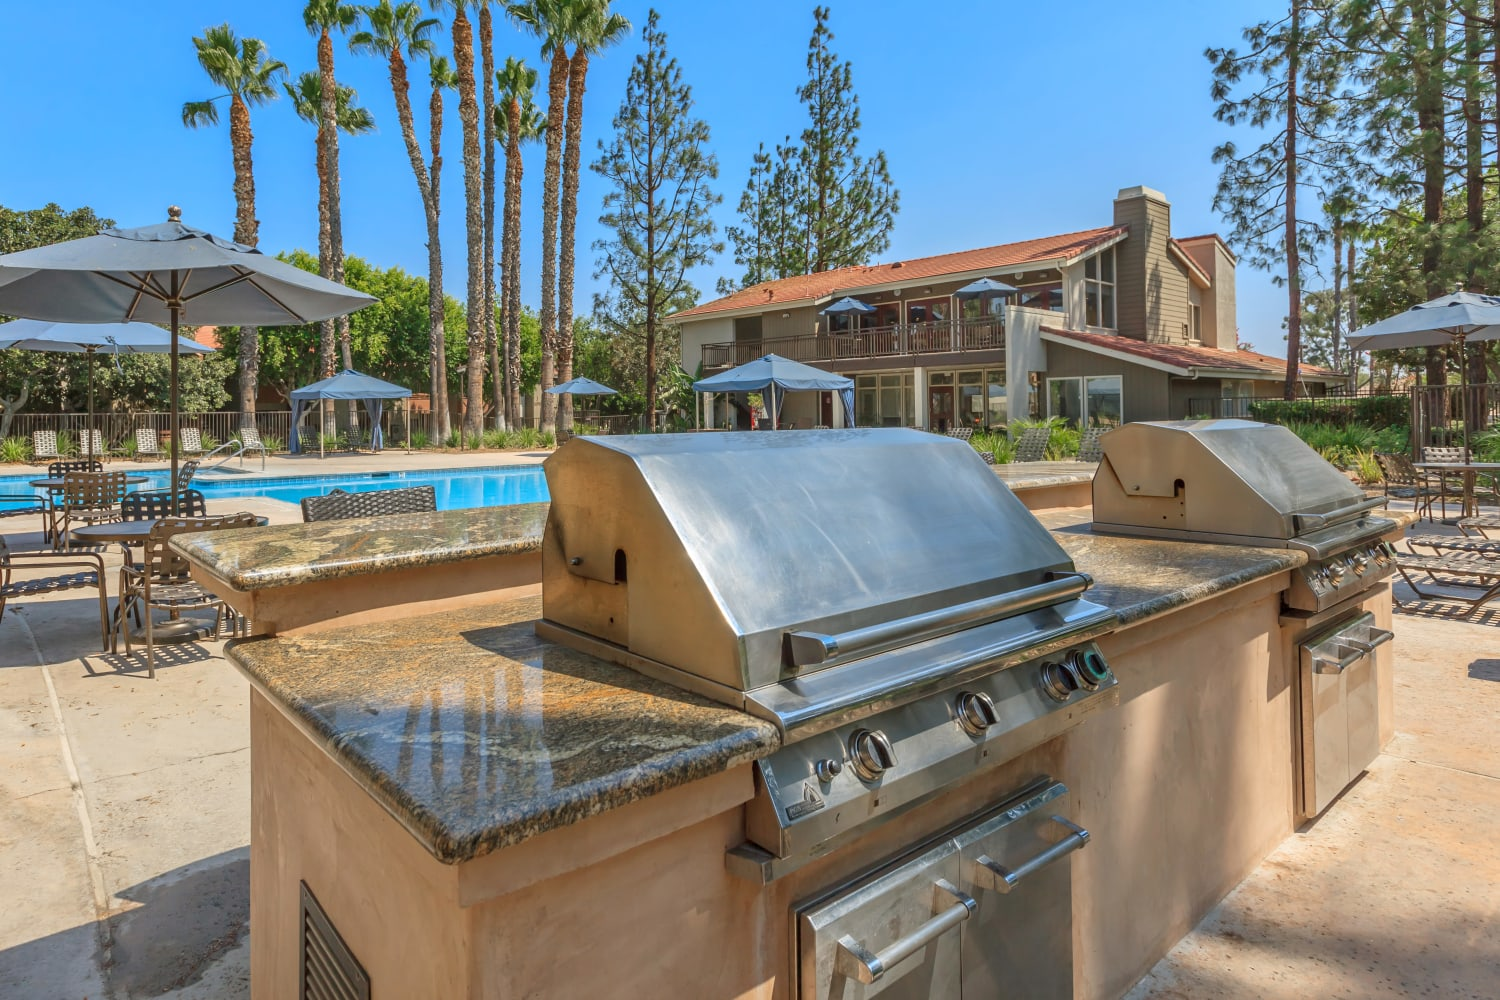 Barbecue at Parcwood Apartments in Corona, California